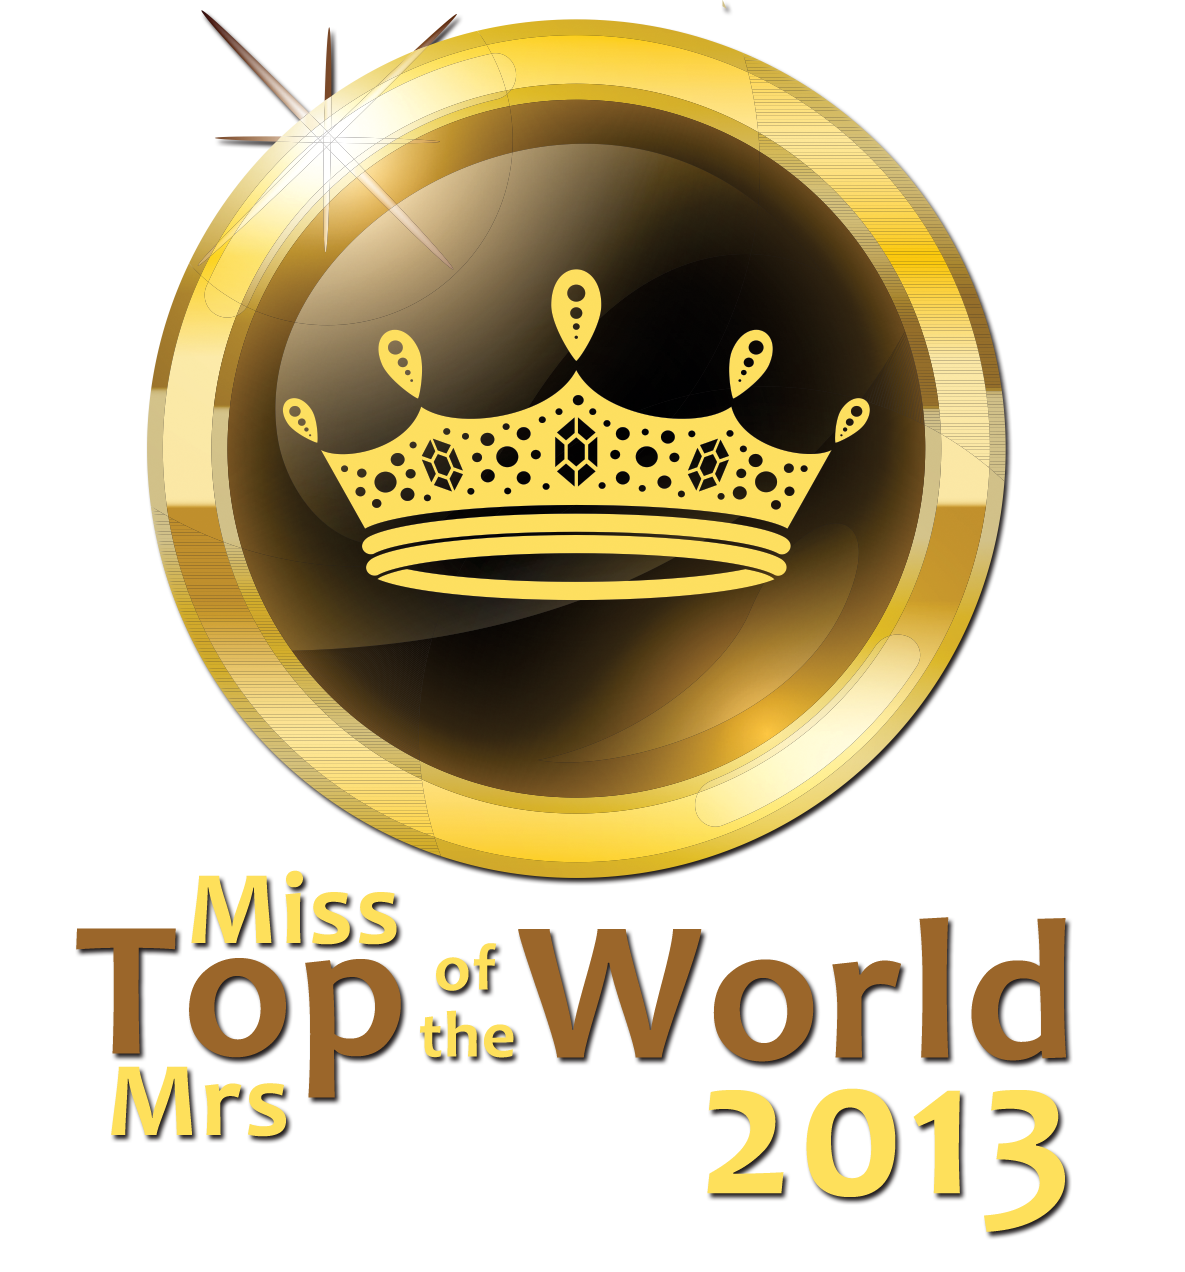 Miss-Top-of-the-World-2013